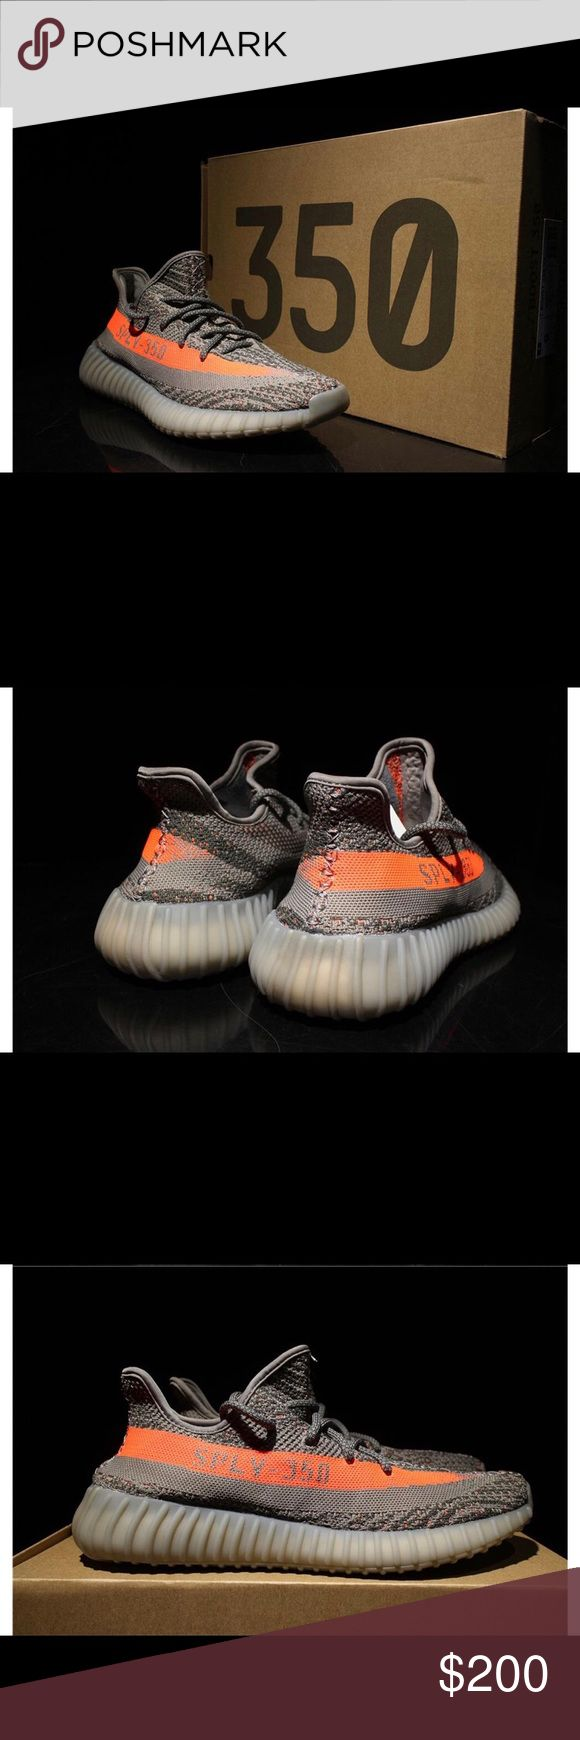 Brand New Yeezys boost 350 v2 Grey yeezys brand new in box with tags adidas Shoes Athletic Shoes